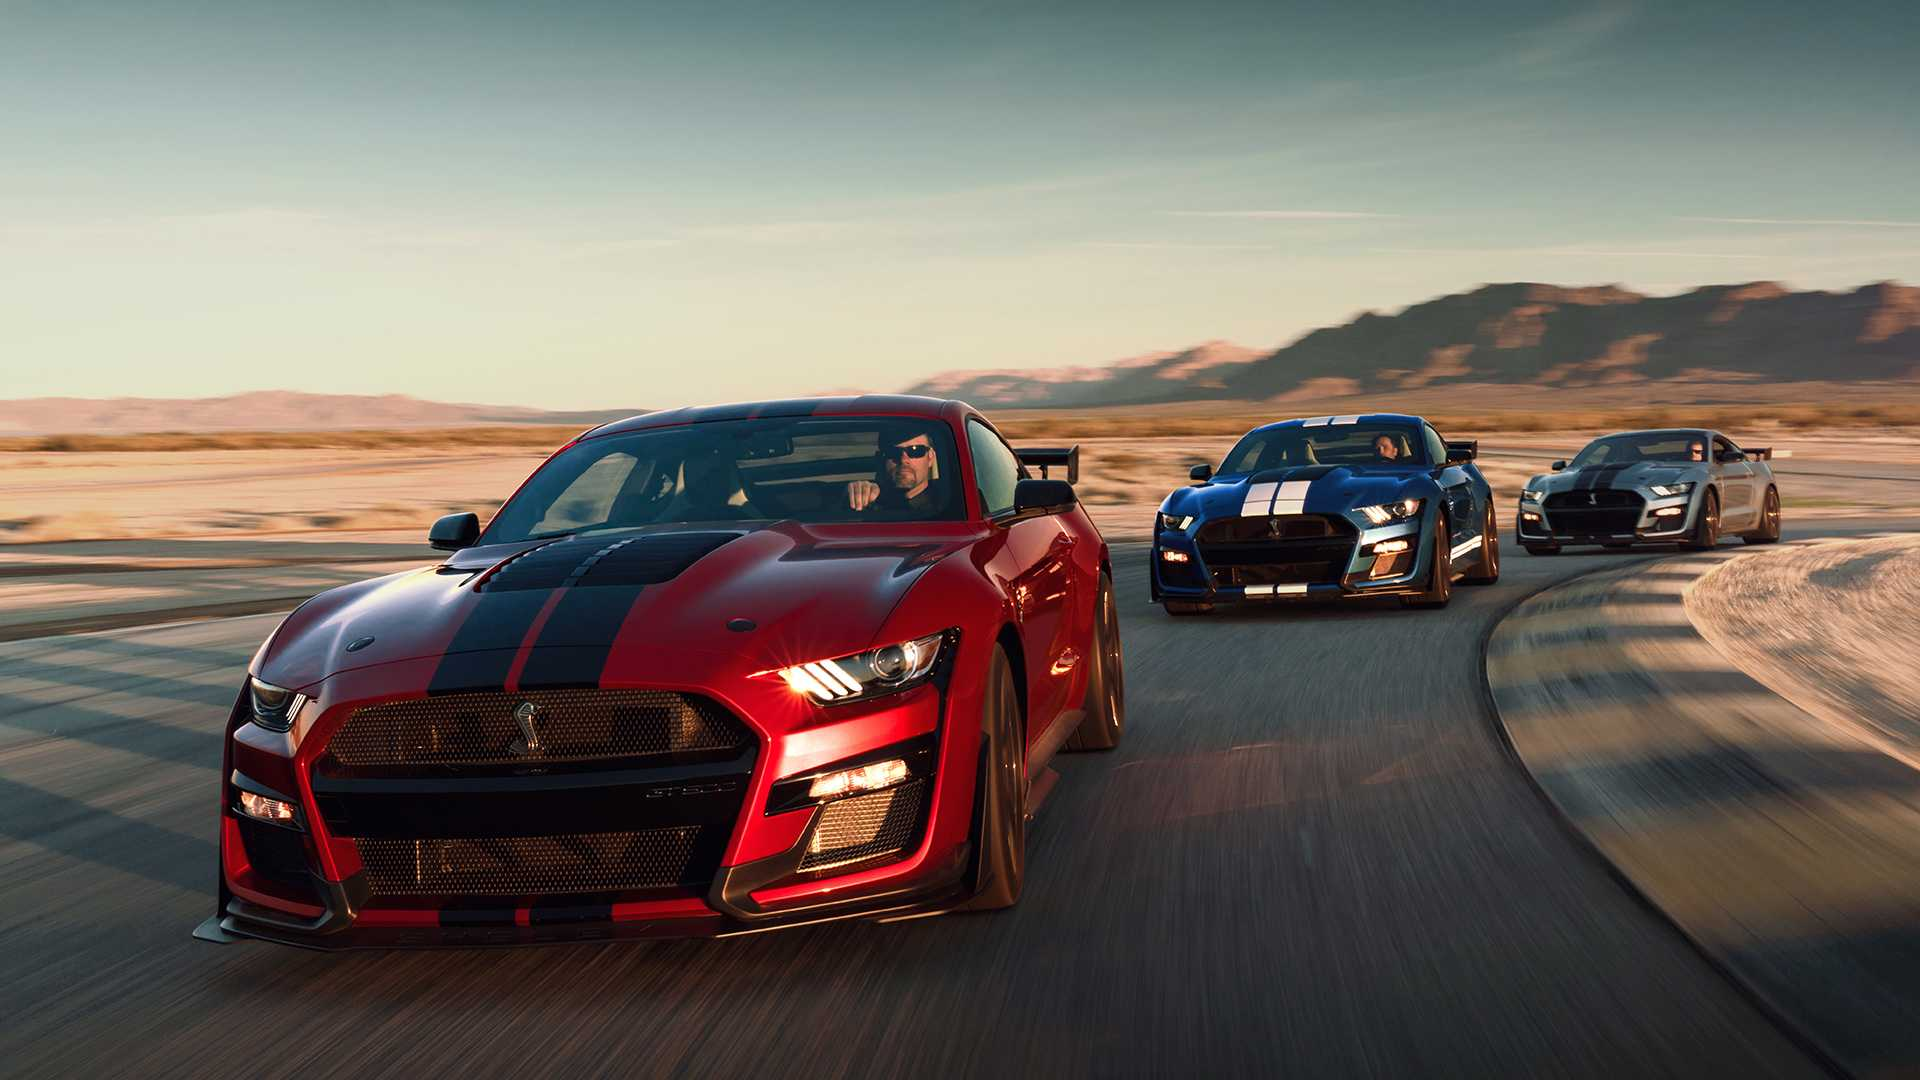 2020-ford-shelby-gt500-19